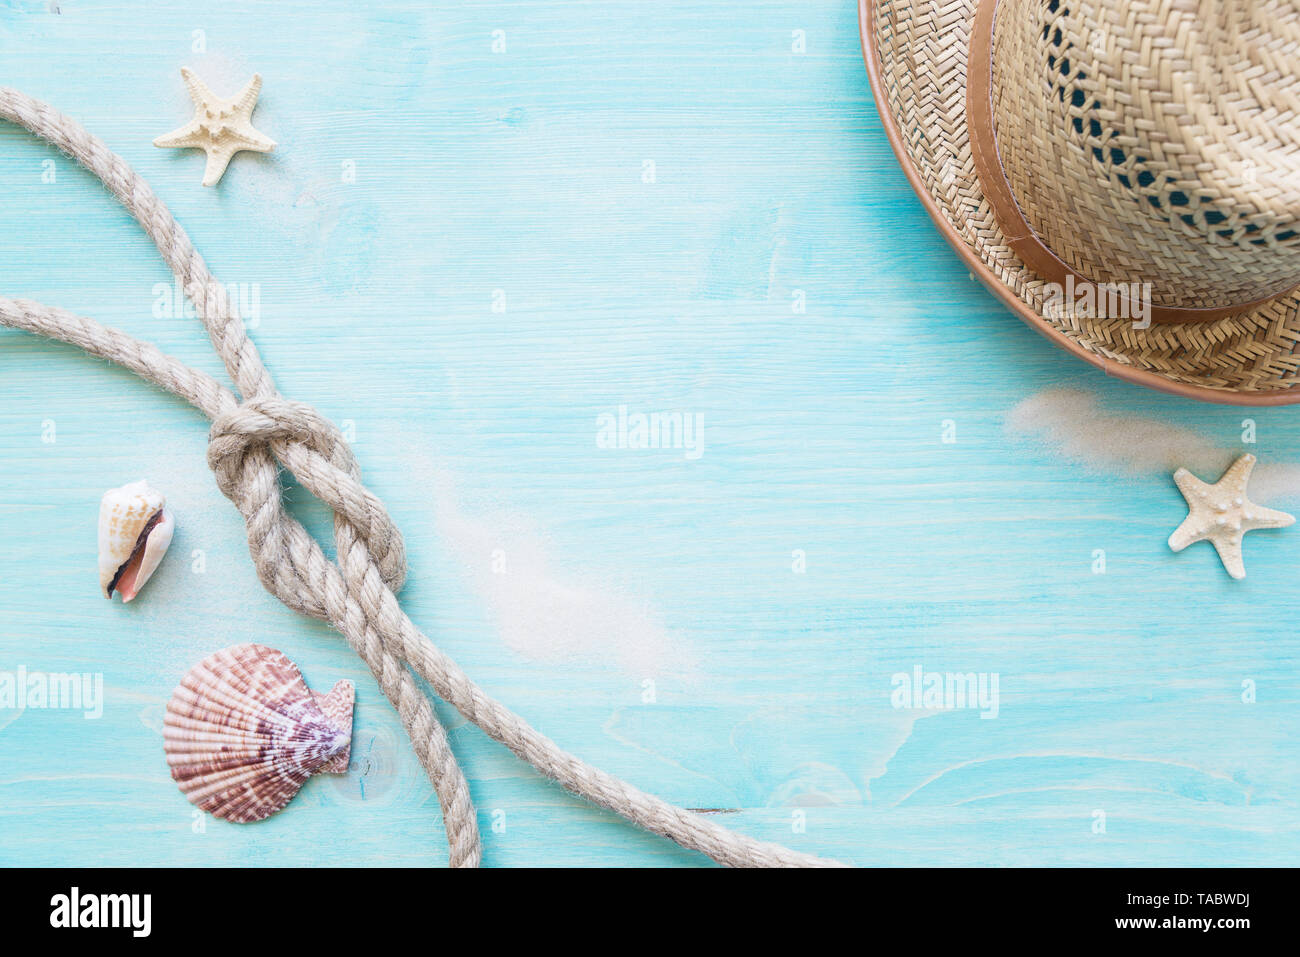 Rough hemp rope tied knot sea, hells, starfishes and straw hat are on the background of blue faded wooden deck. Marine concept - Stock Image